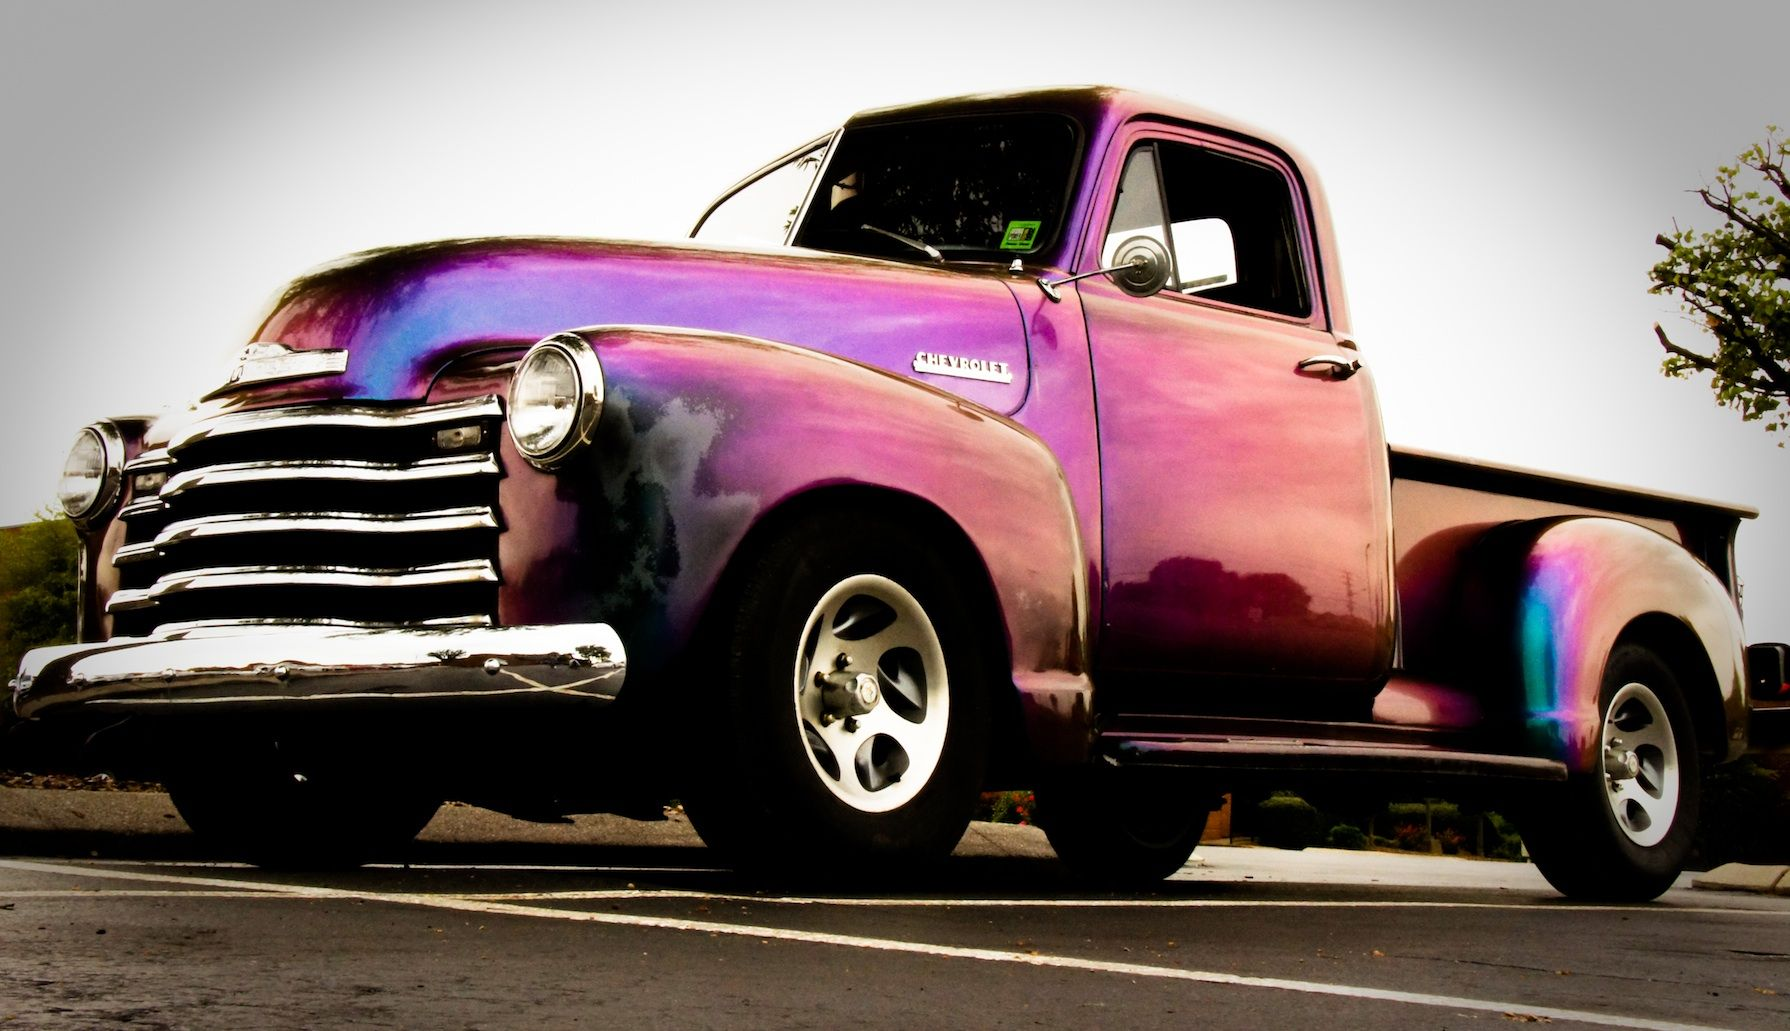 Catering Services Ogden Utah We Make Easy Classic 1954 Chevy Truck Air Cleaner Wow What A Paint Jobsweet